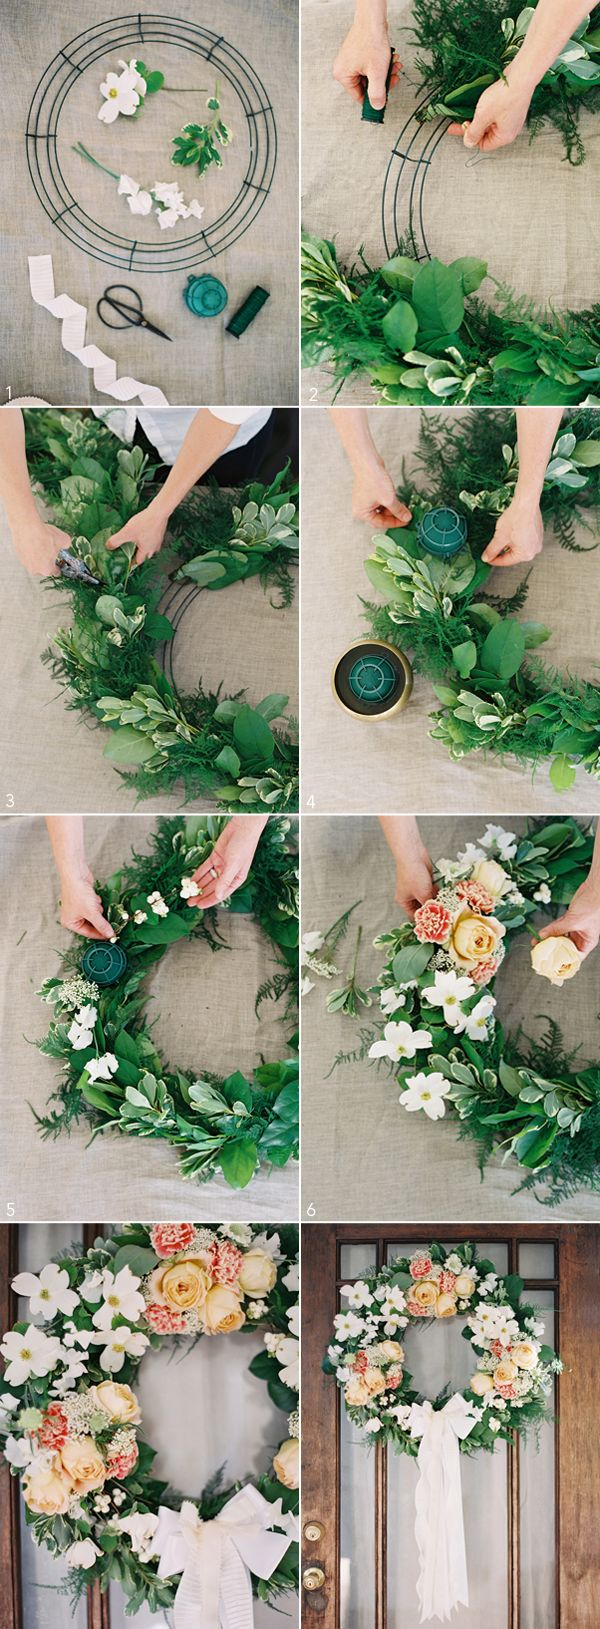 Gorgeous Ideas for Handmade Wedding Decorations